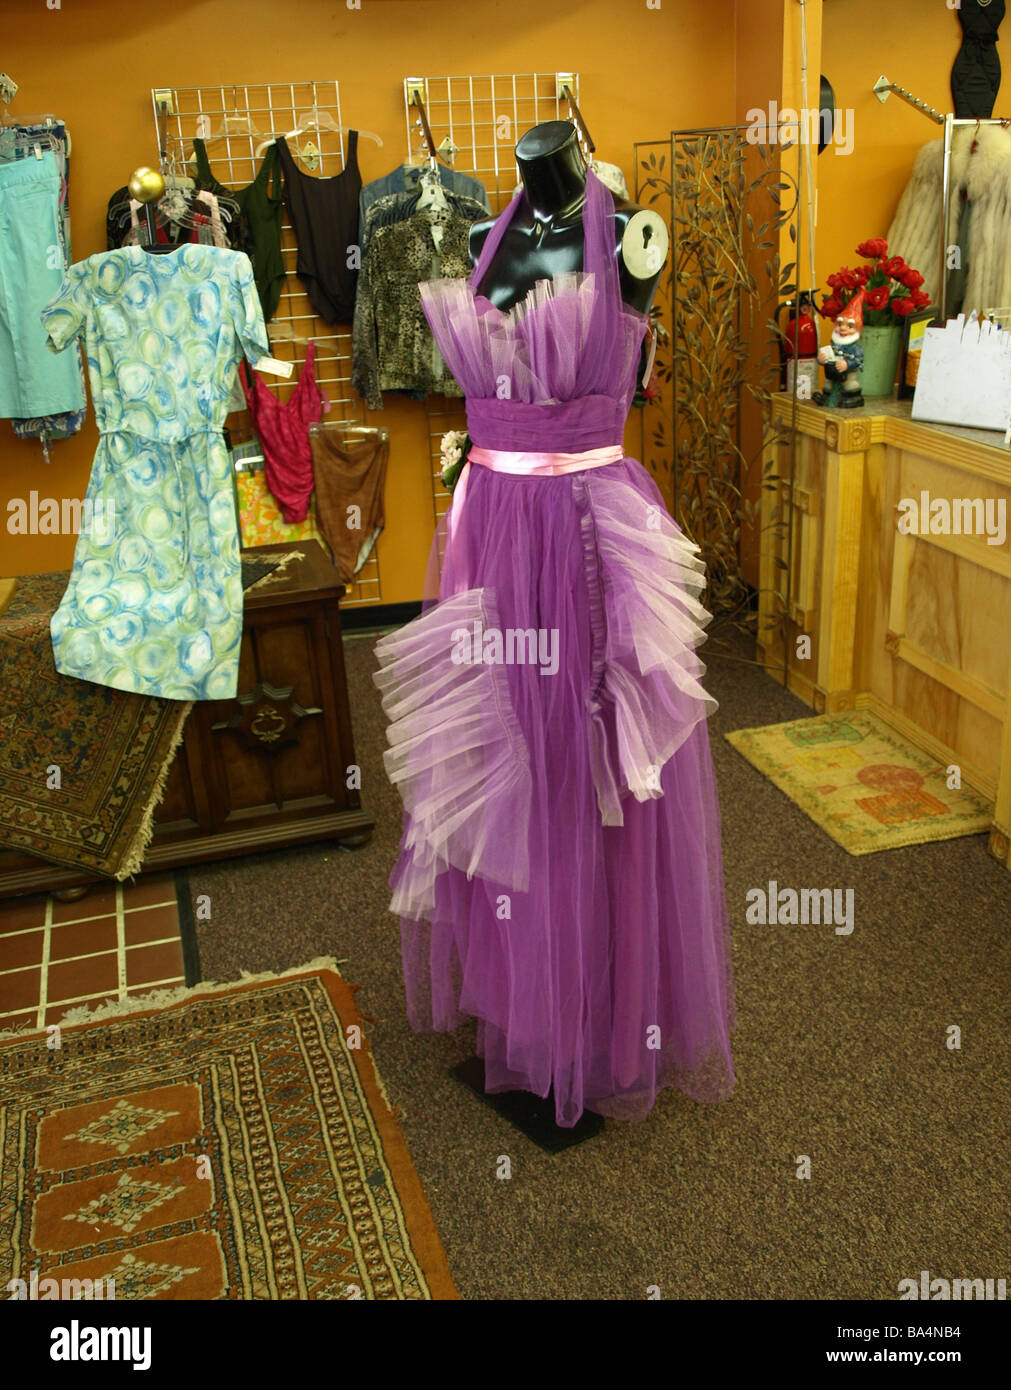 Prom Dress Stockfotos & Prom Dress Bilder - Alamy